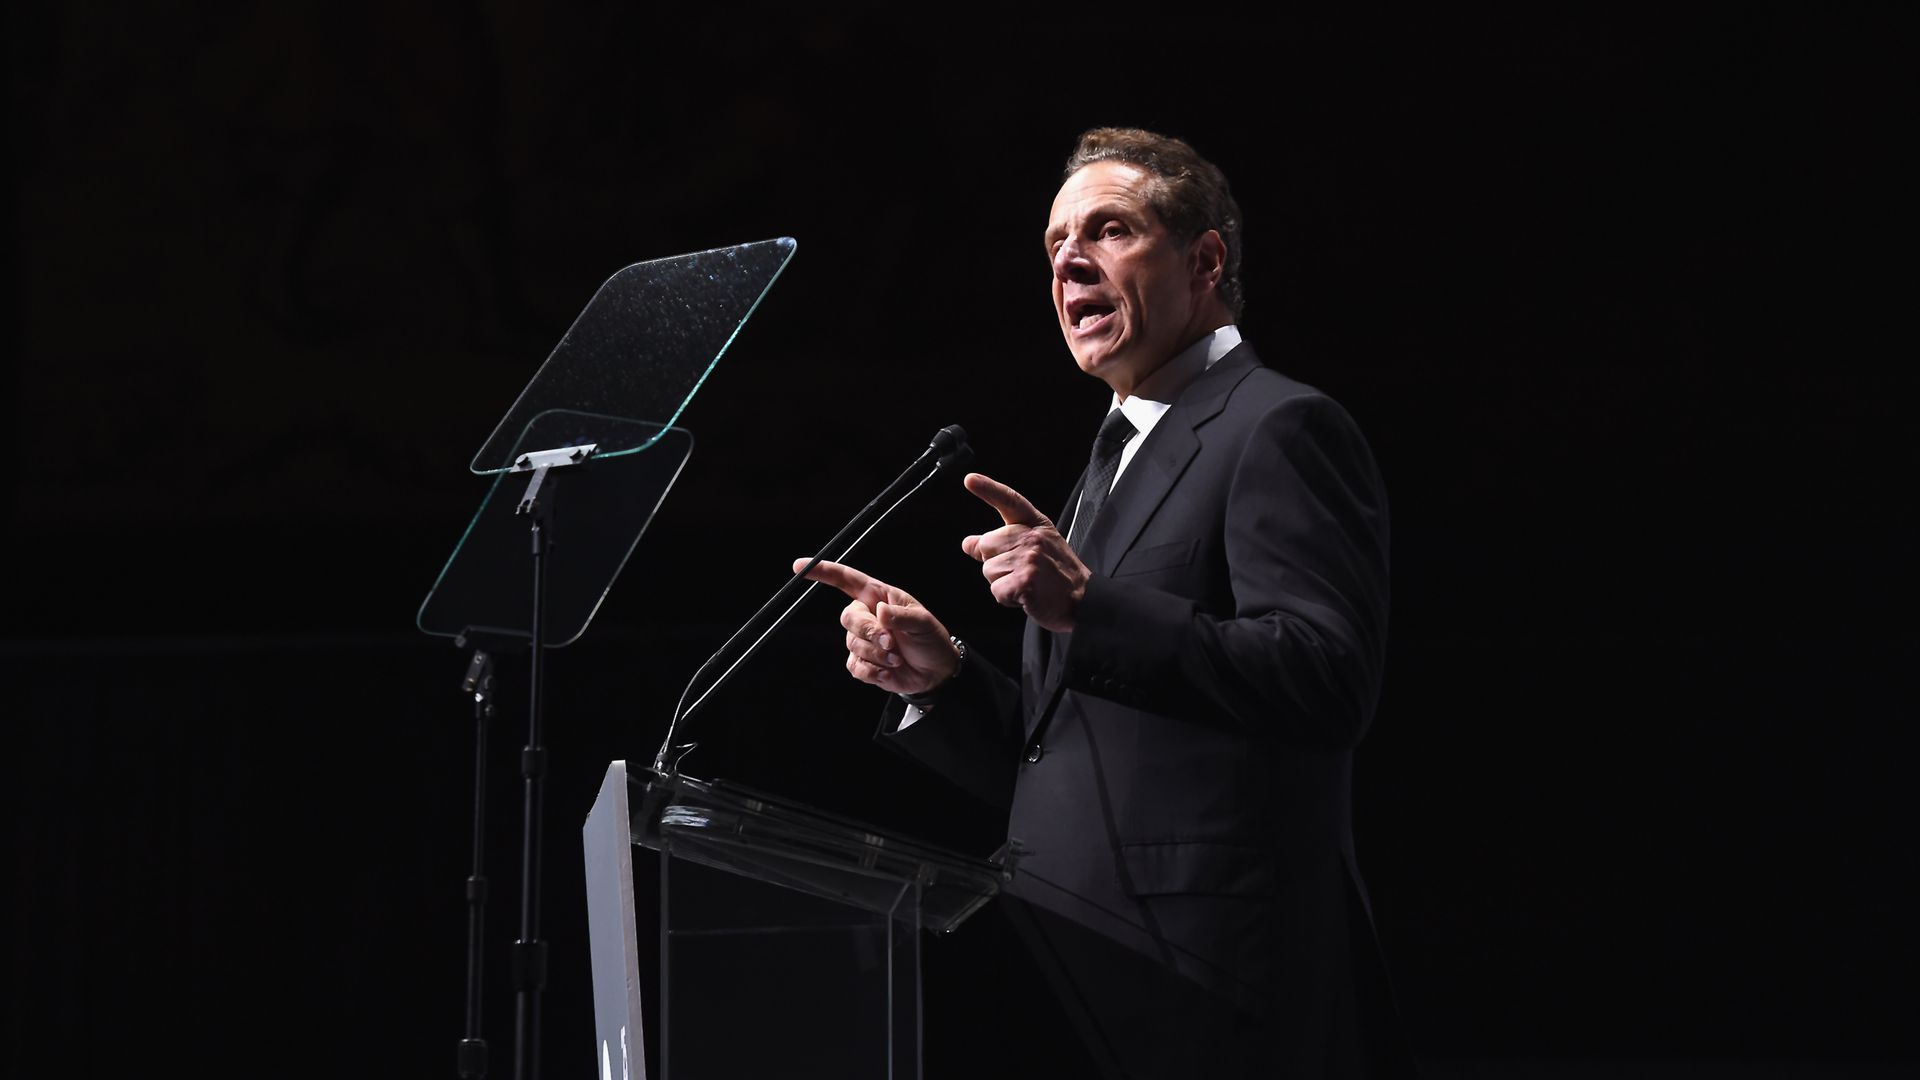 New York Gov. Andrew Cuomo speaking at a charity event.